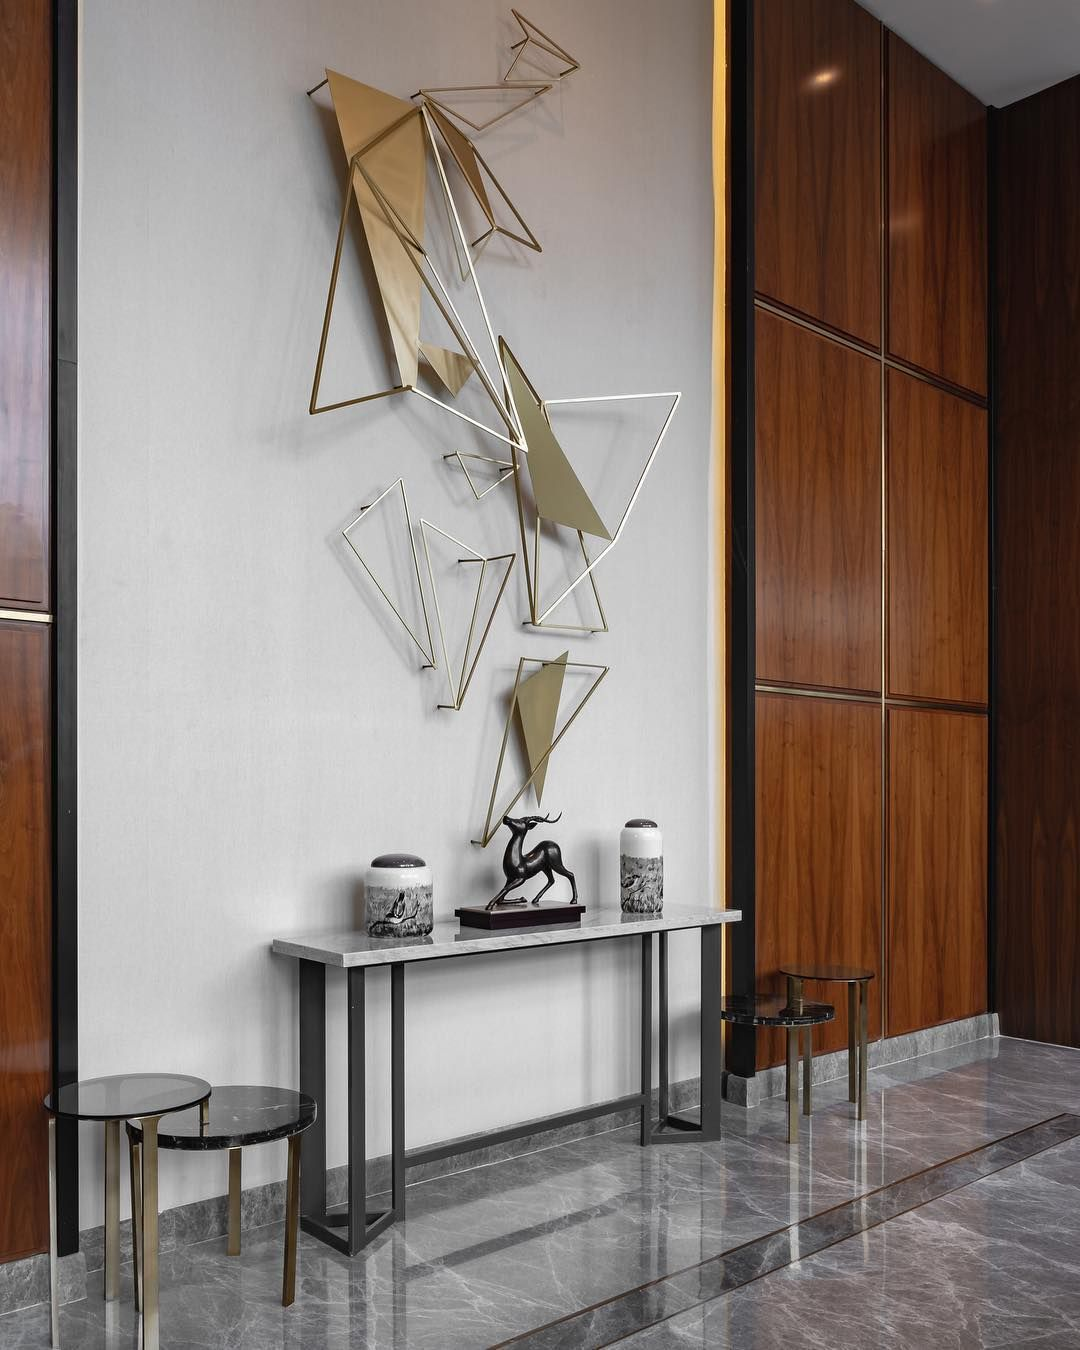 Alluring Pieces Of Furniture And Decorative Elements Are As Well